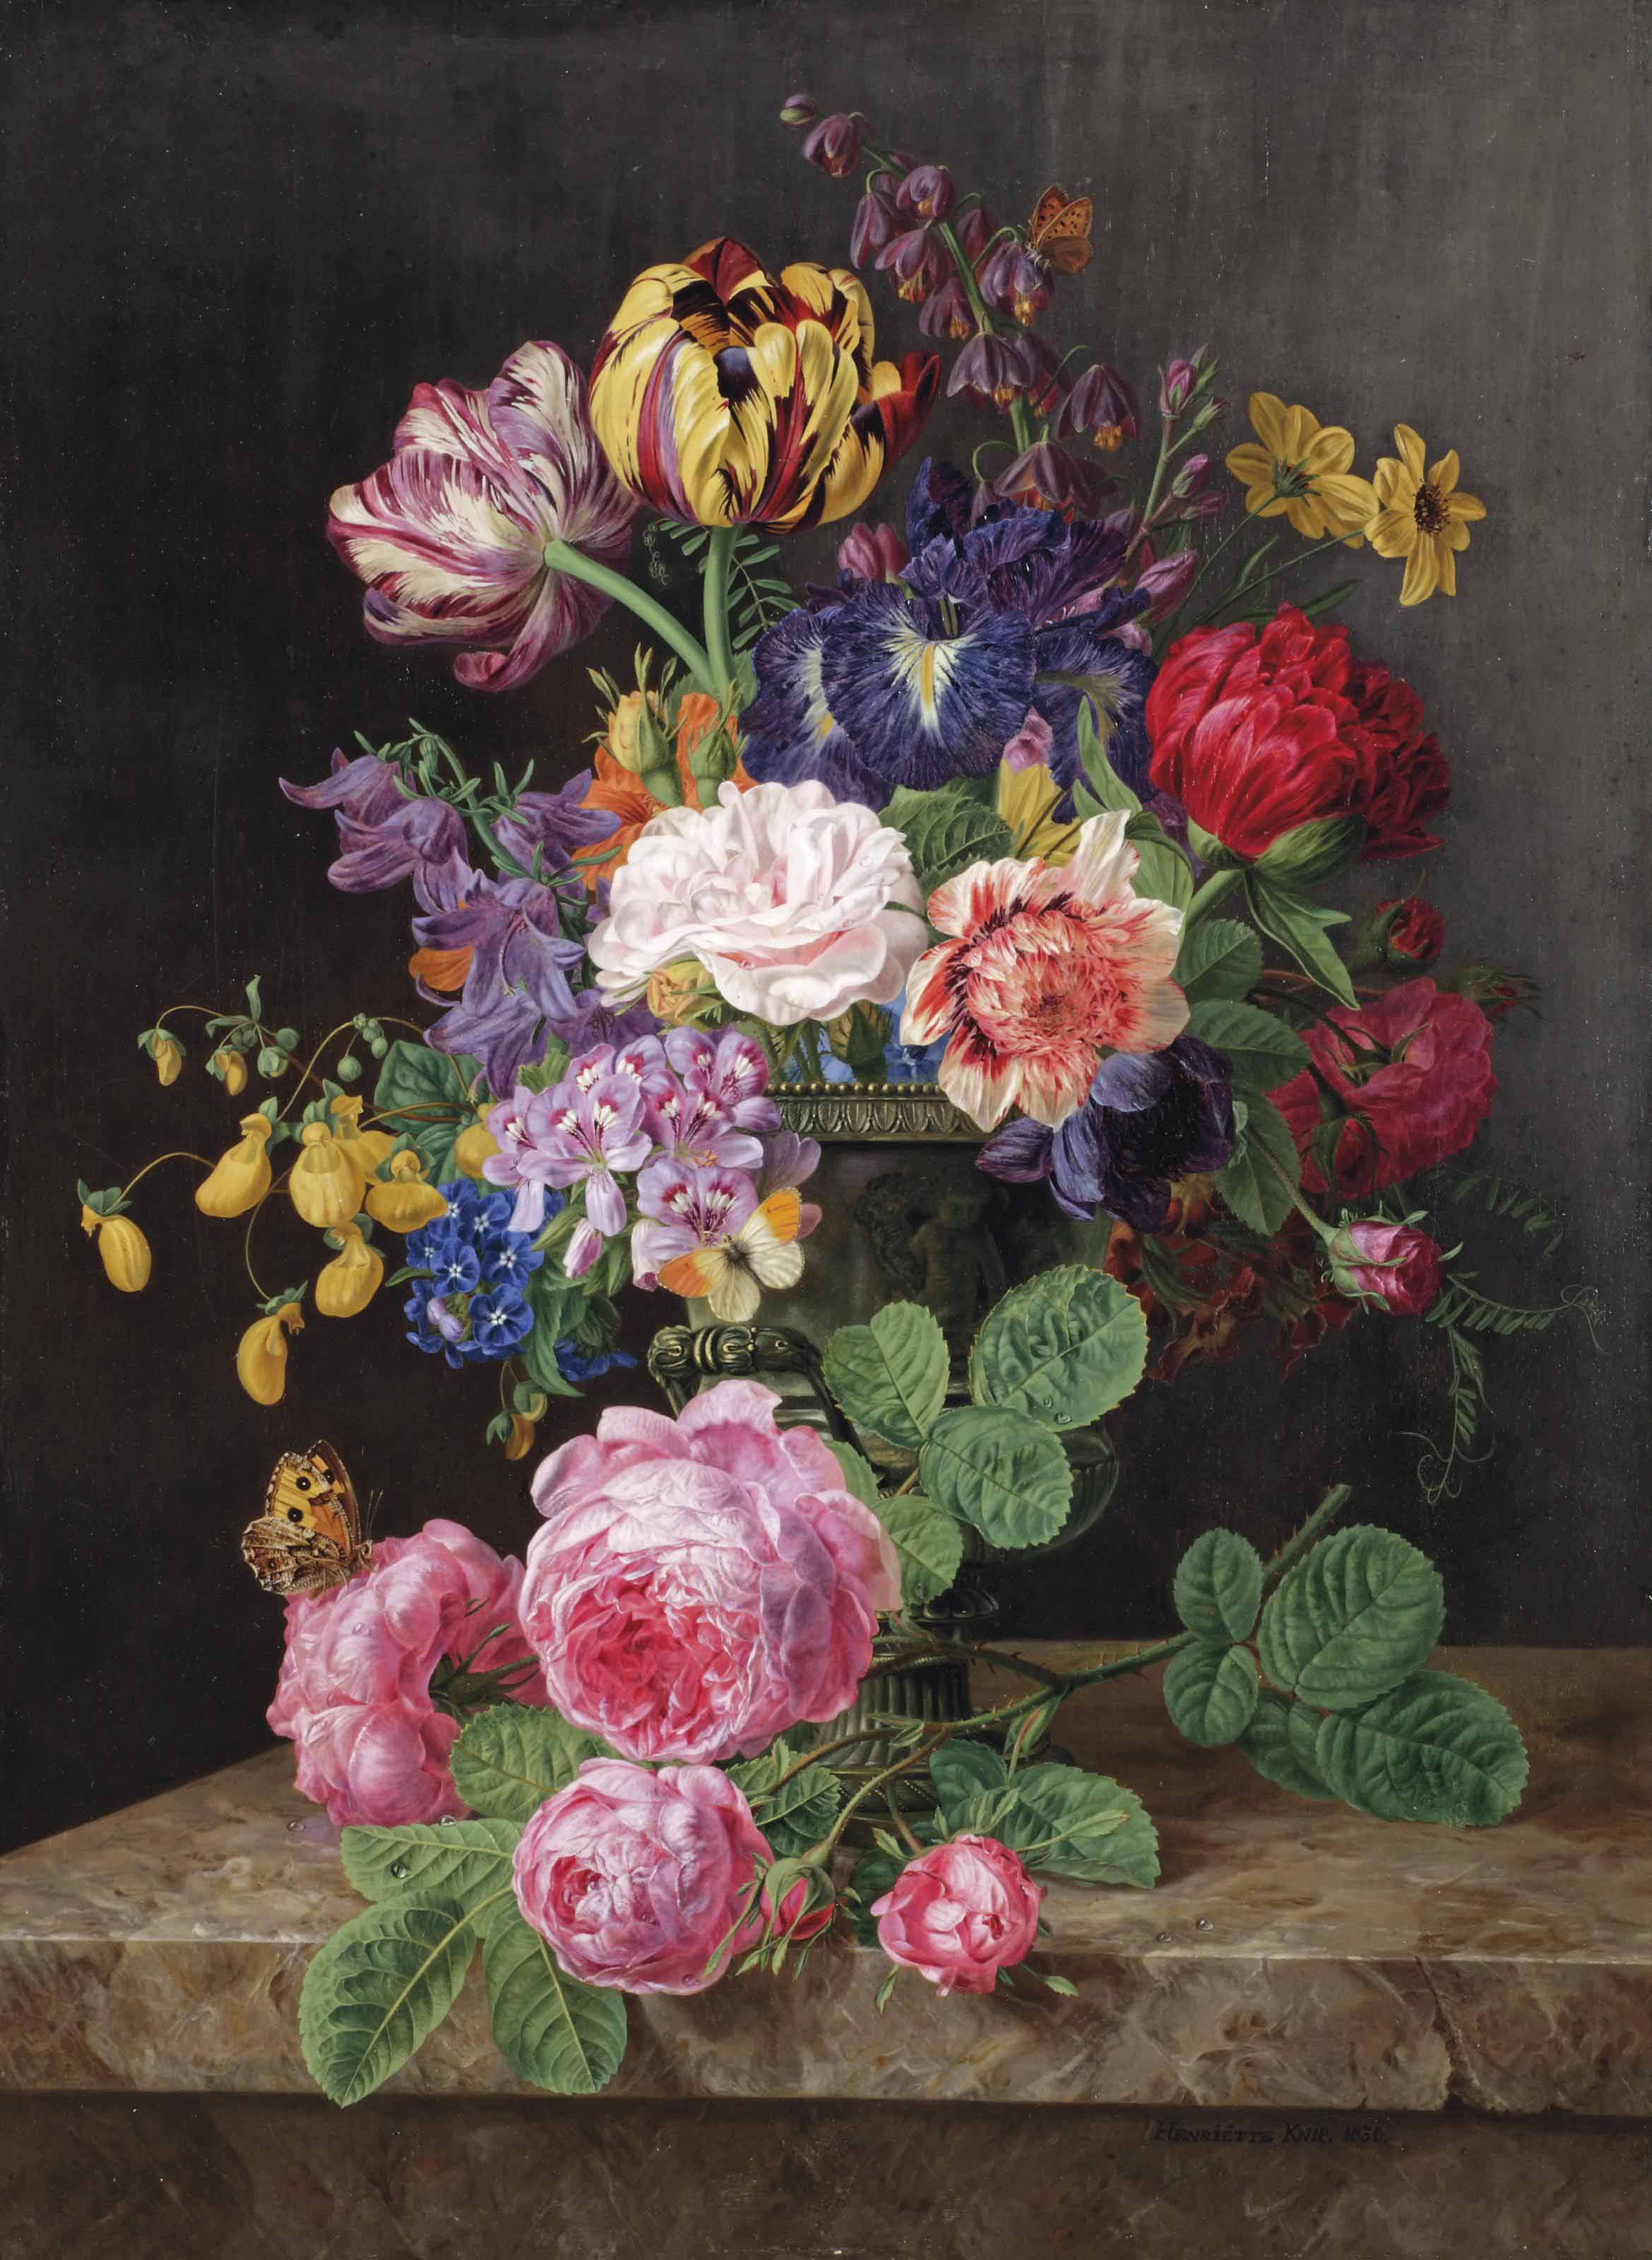 Roses, tulips, lady's purses, black irises and other flowers in a vase, and a stem of pink roses, on a stone ledge